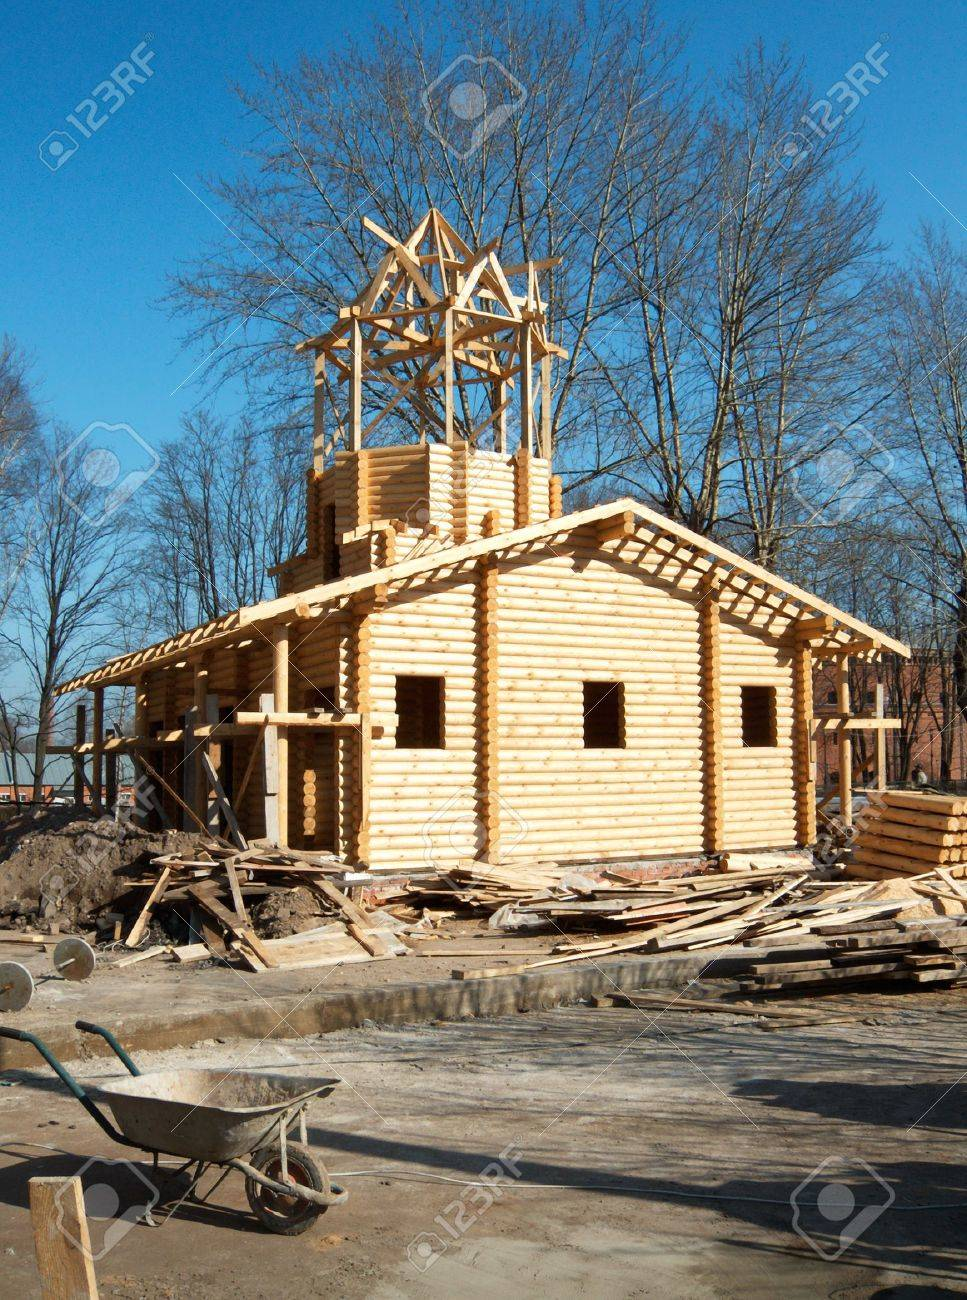 Construction the large log house with a turret at top - 1269499